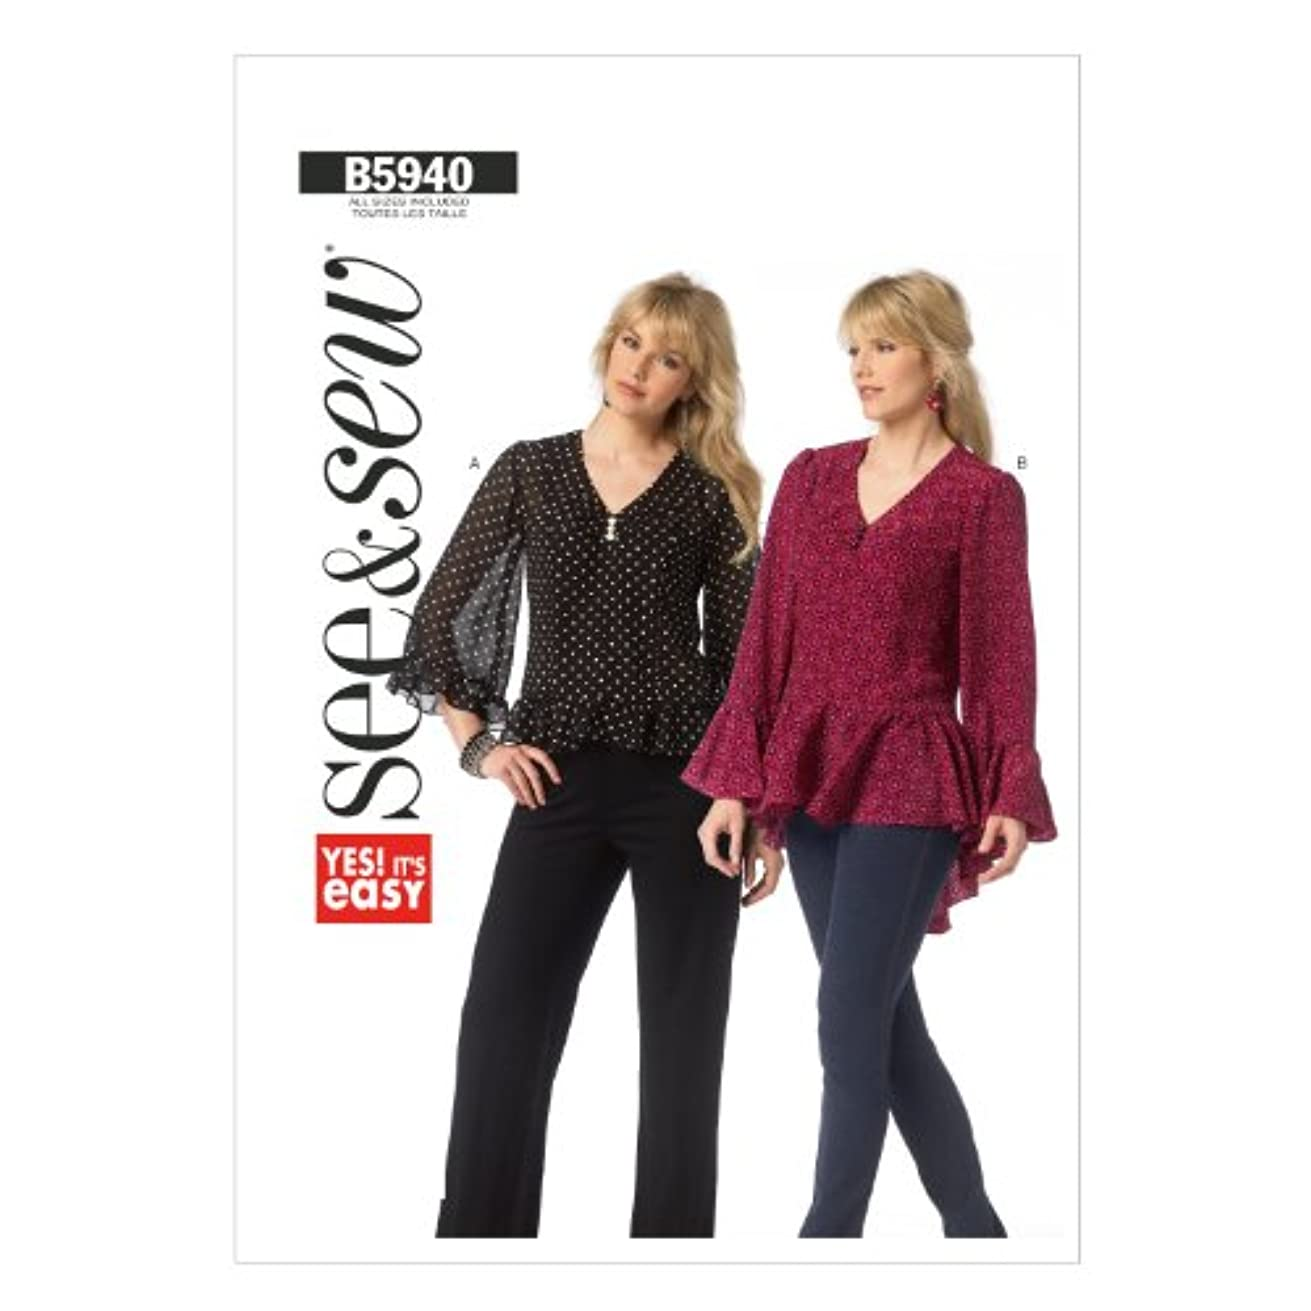 Butterick Patterns B5940 Misses' Top Sewing Template, Size A (All Sizes in One Envelope)